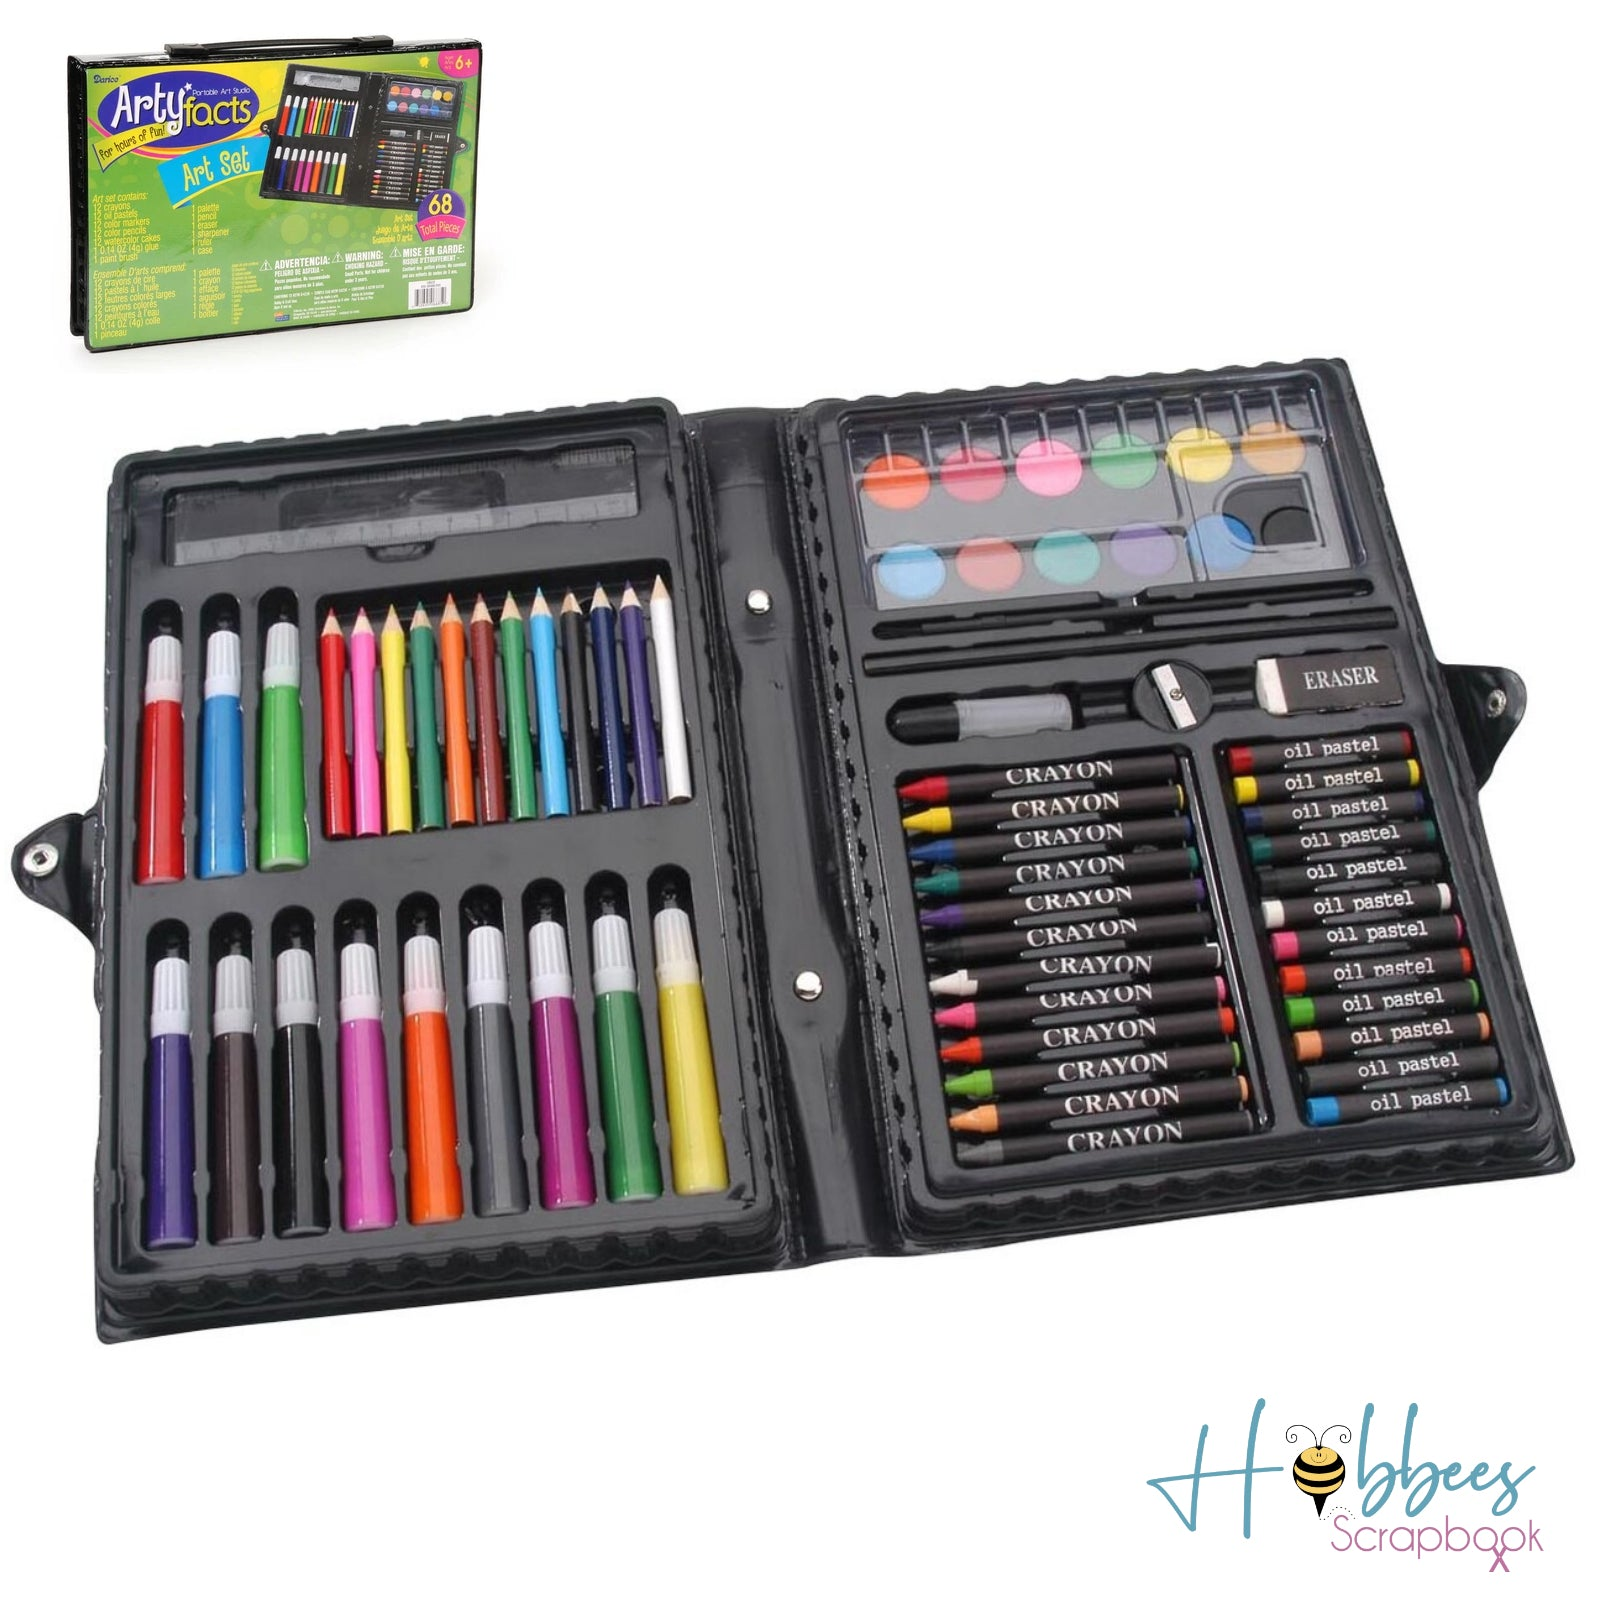 Artyfacts Portable Art Studio 68 Pieces / Set de Pintura Principiantes